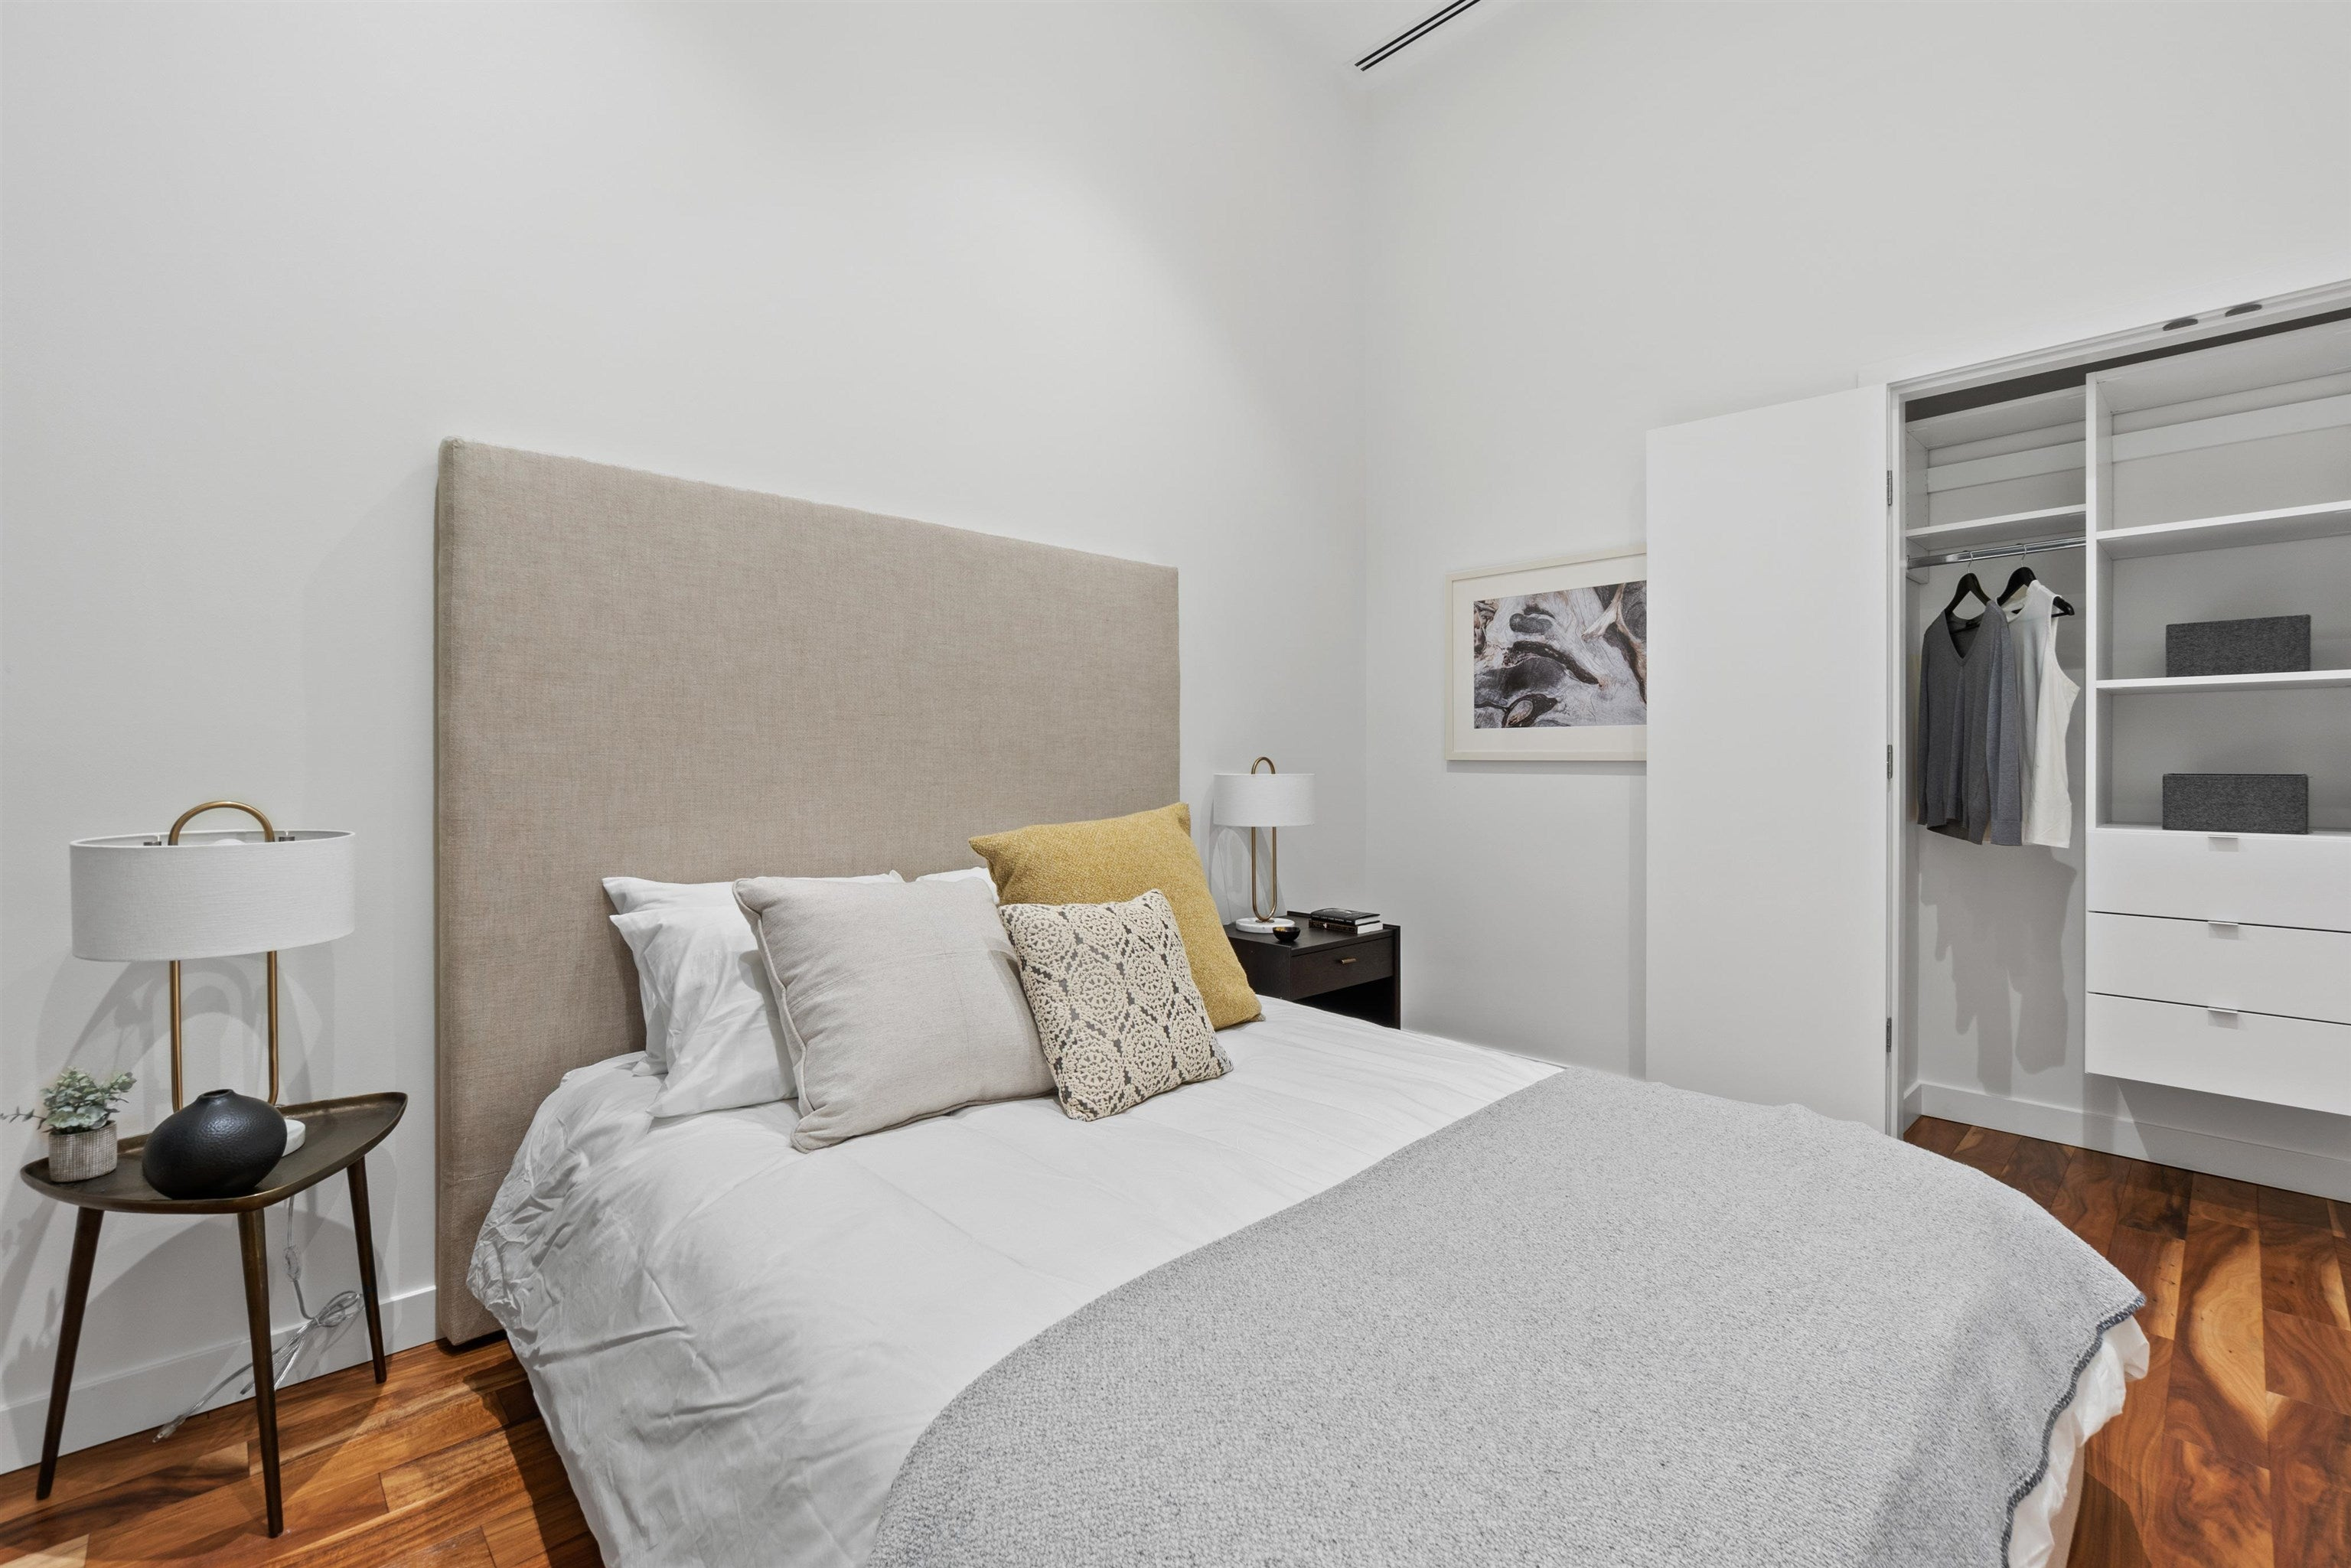 2402 125 E 14TH STREET - Central Lonsdale Apartment/Condo for sale, 2 Bedrooms (R2617870) - #29